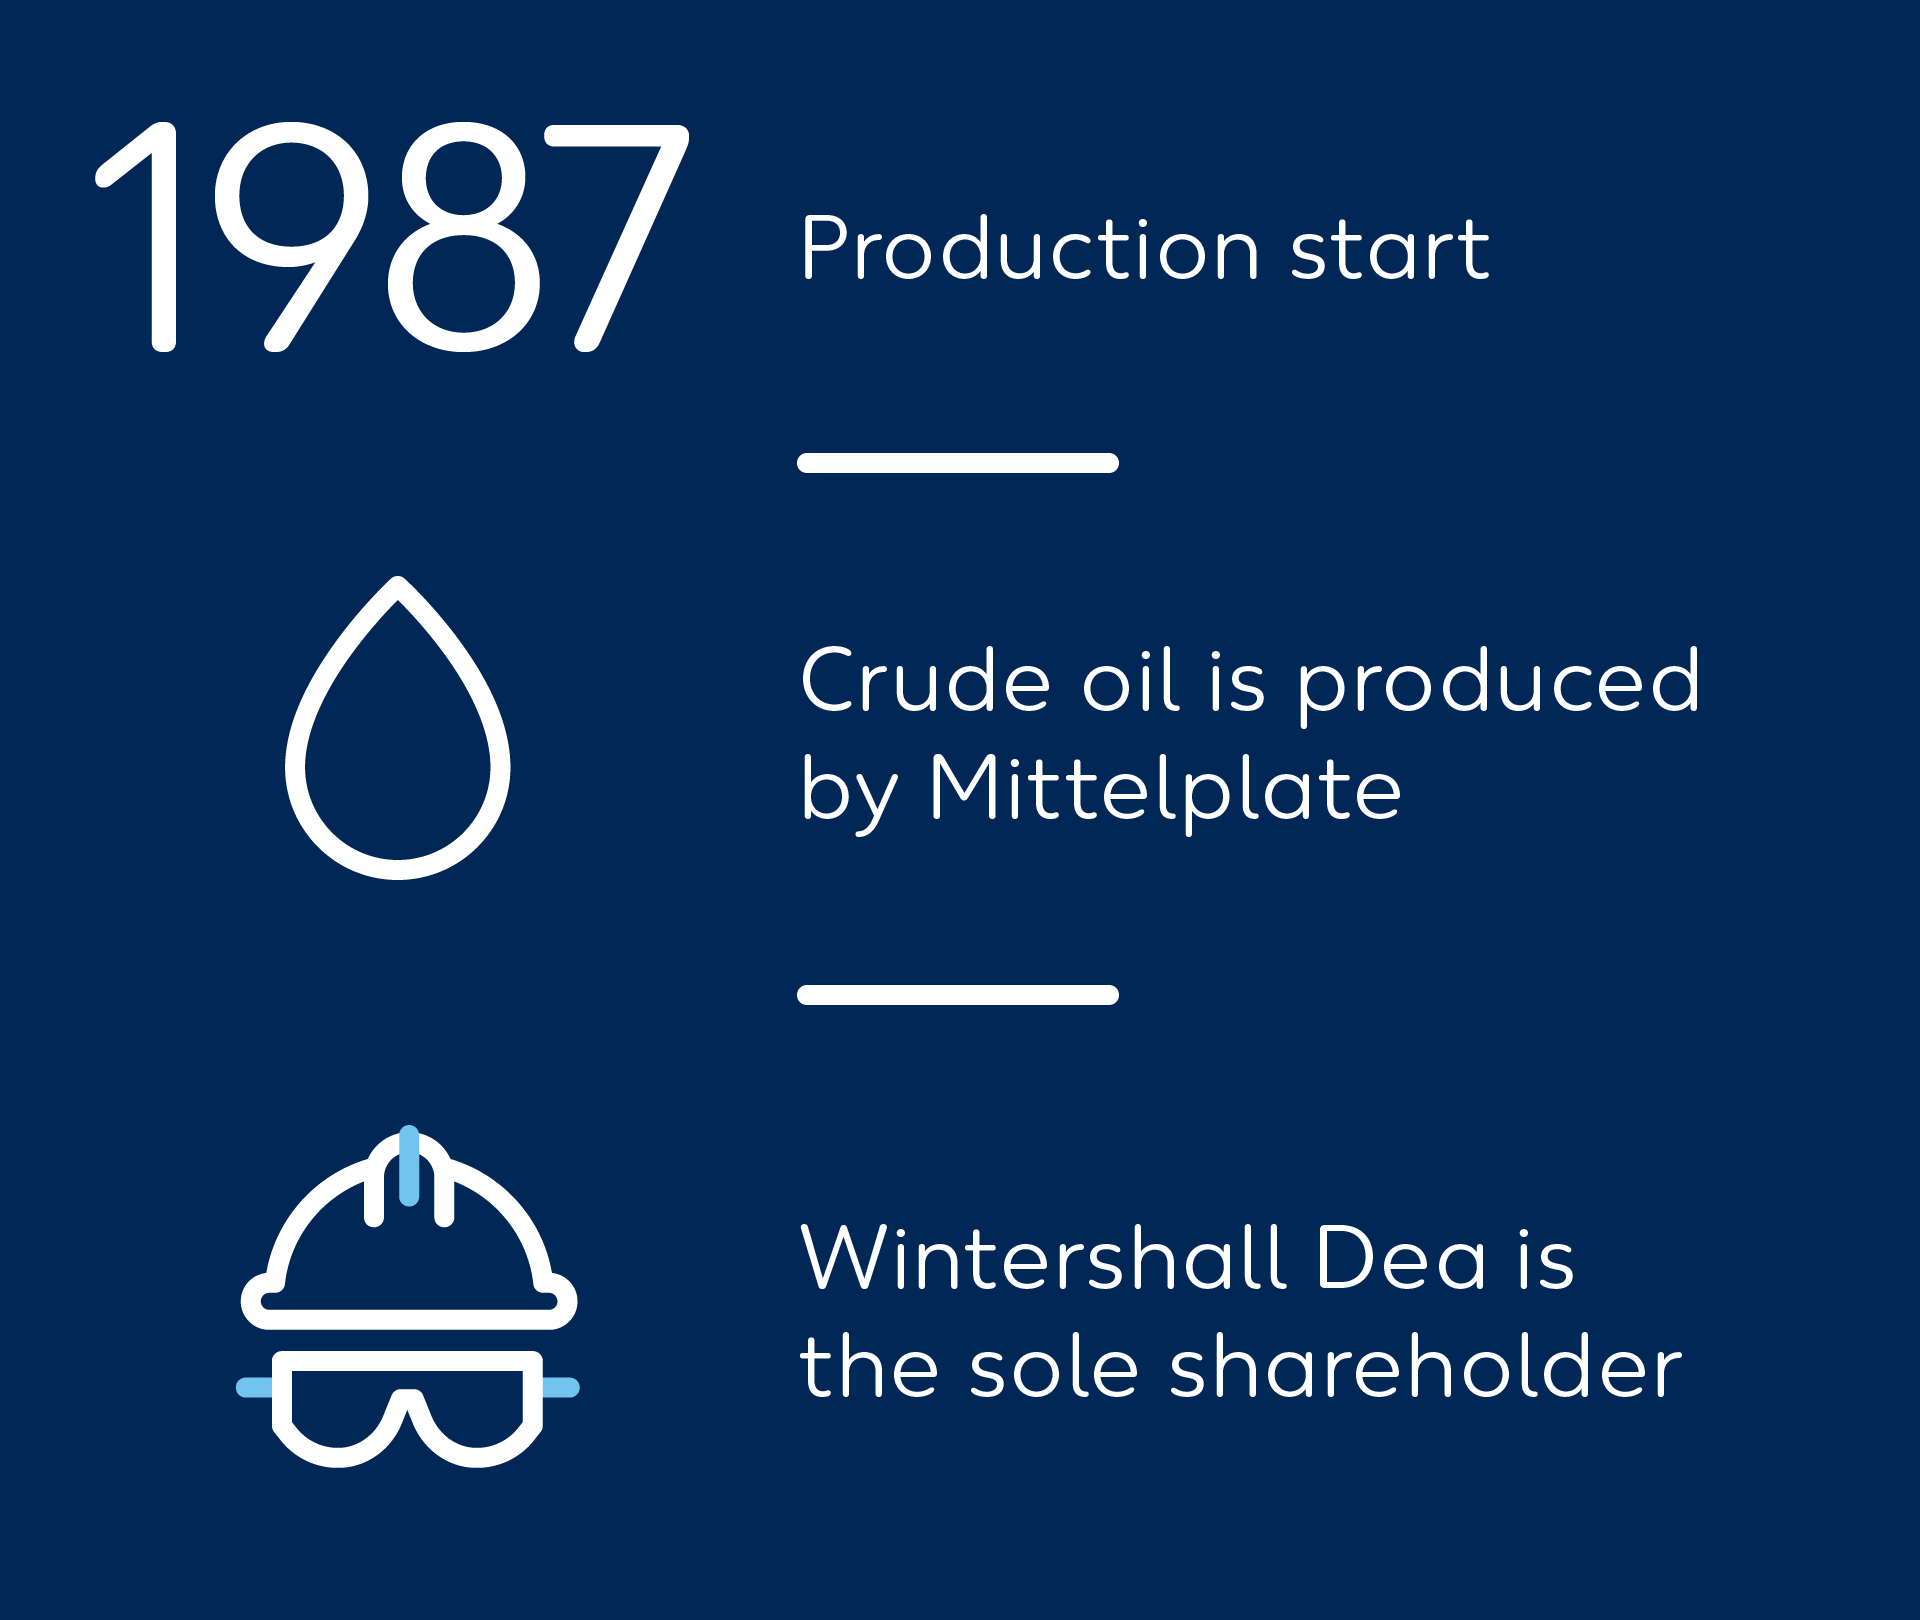 Wintershall Dea Quickfact Mittelplate